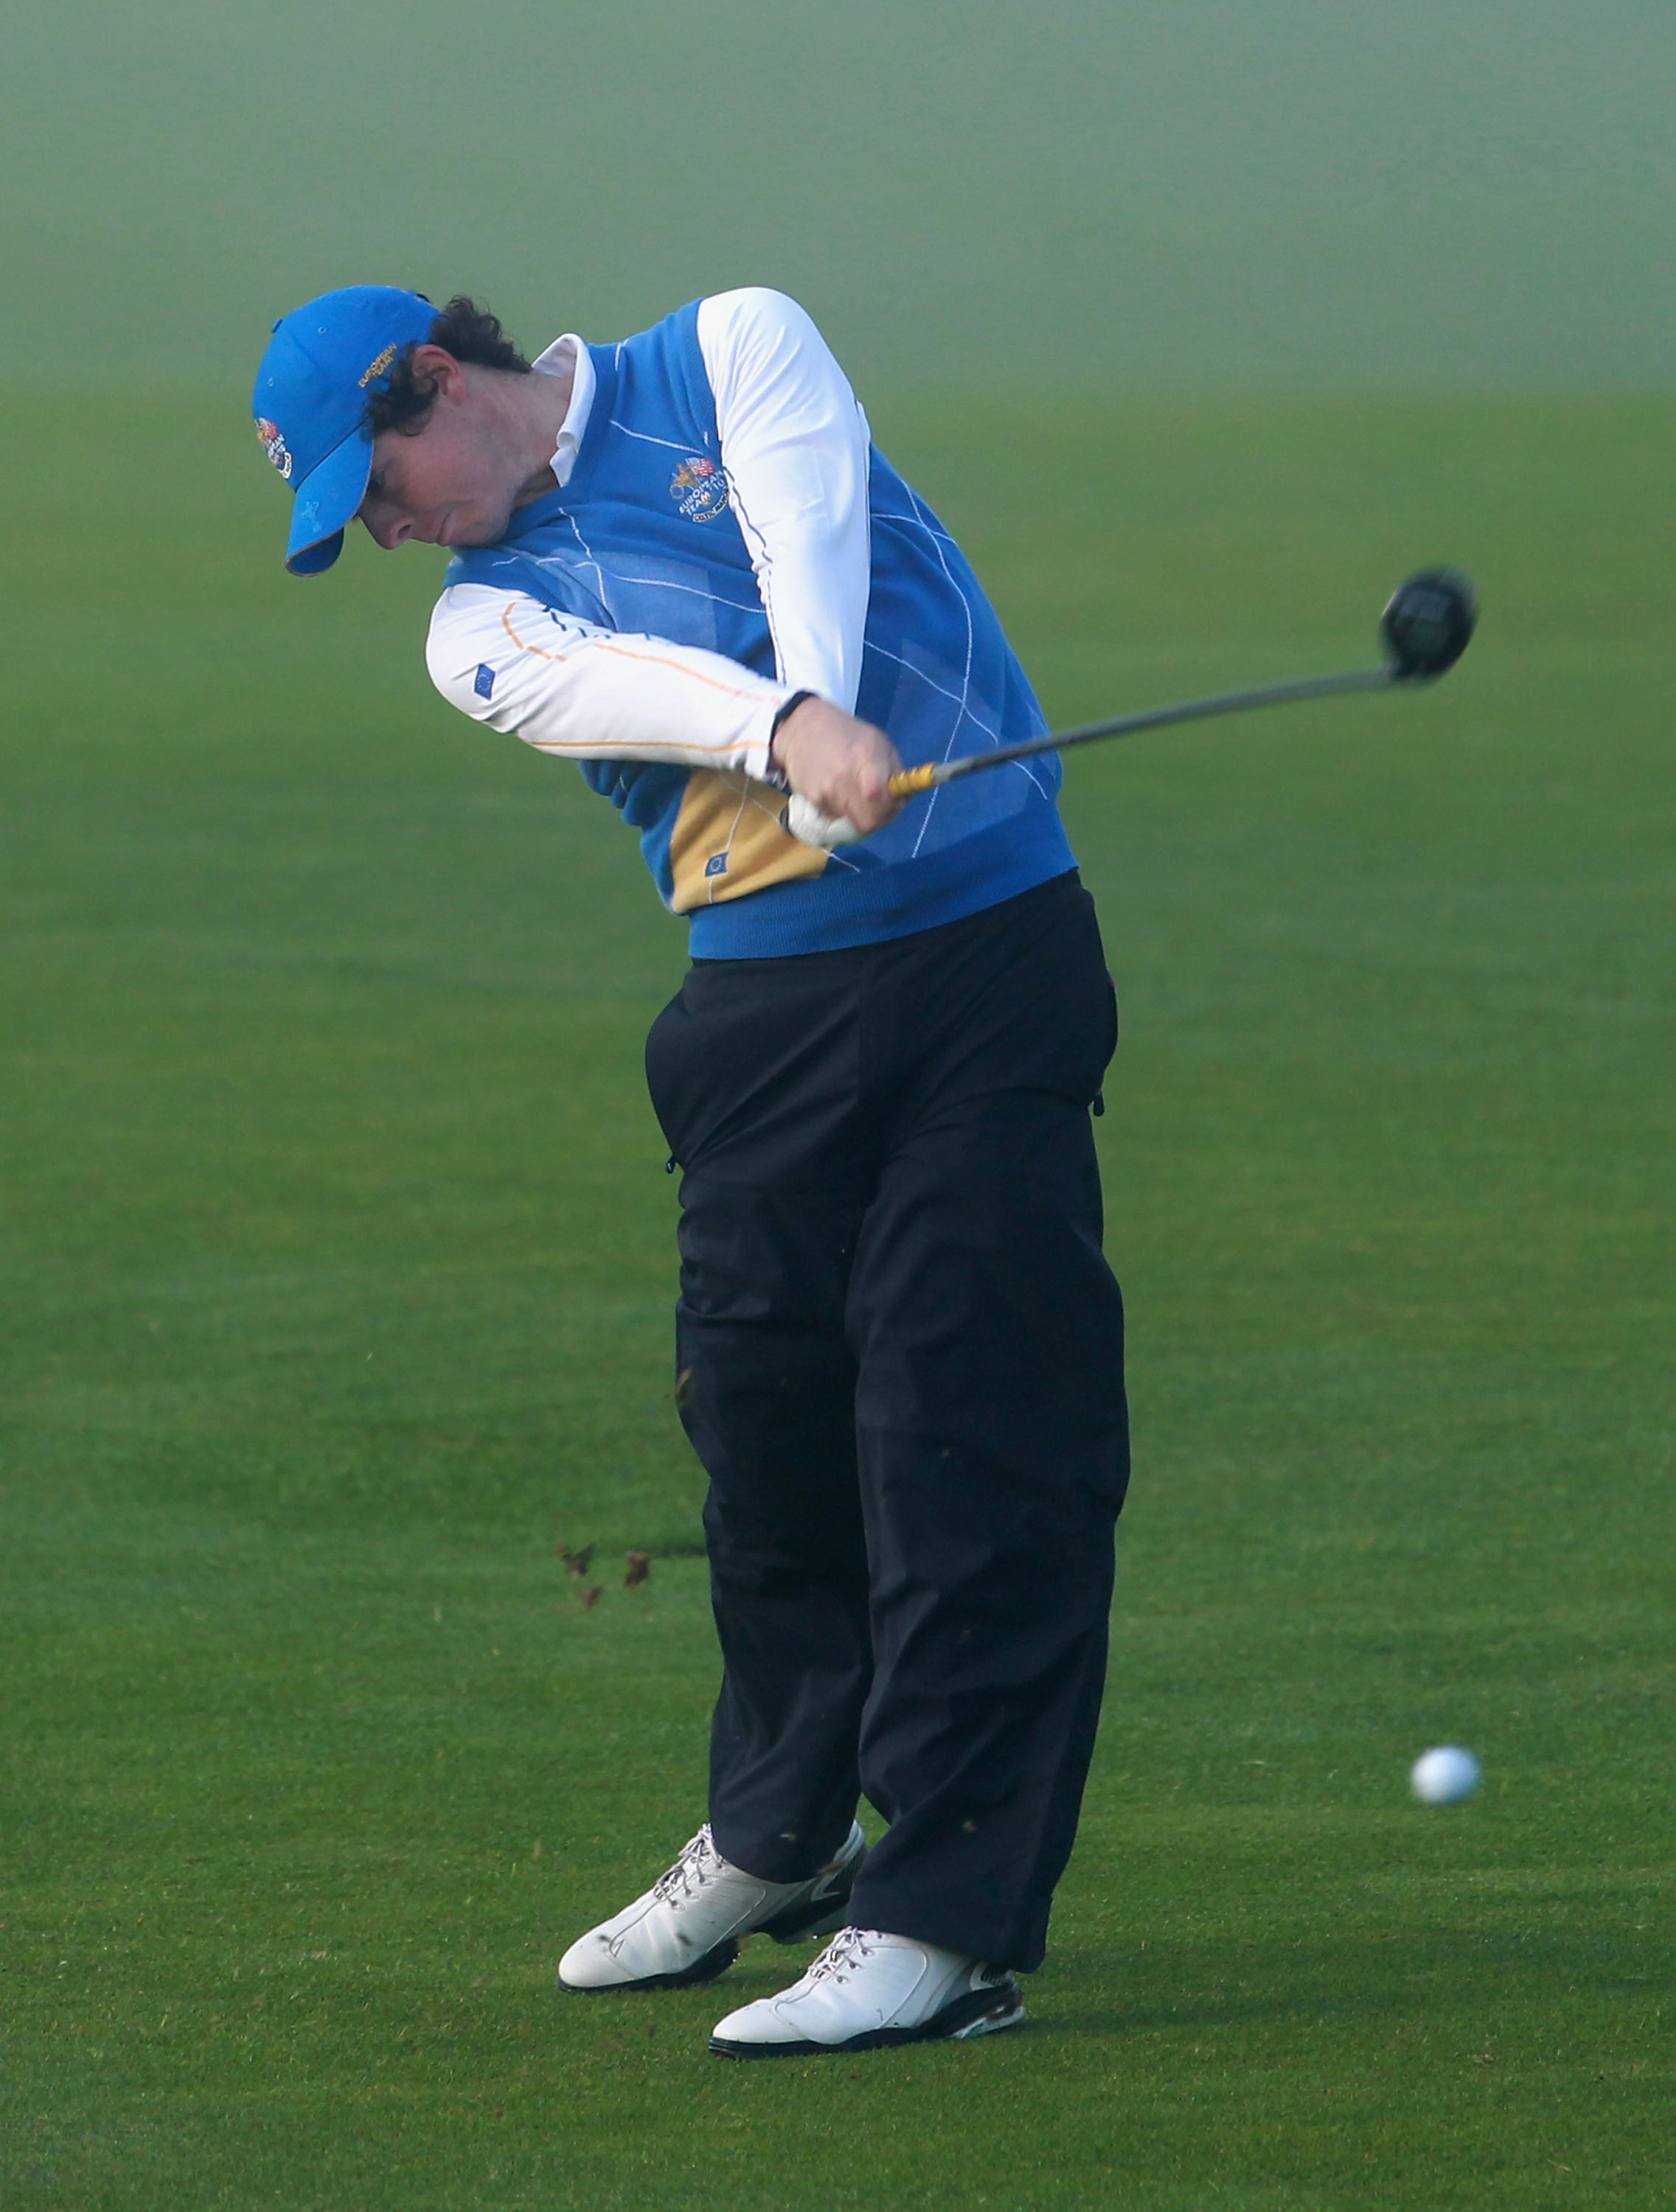 NEWPORT, WALES - OCTOBER 04:  Rory McIlroy of Europe hits a shot on the second hole in the singles matches during the 2010 Ryder Cup at the Celtic Manor Resort on October 4, 2010 in Newport, Wales.  (Photo by Andrew Redington/Getty Images)